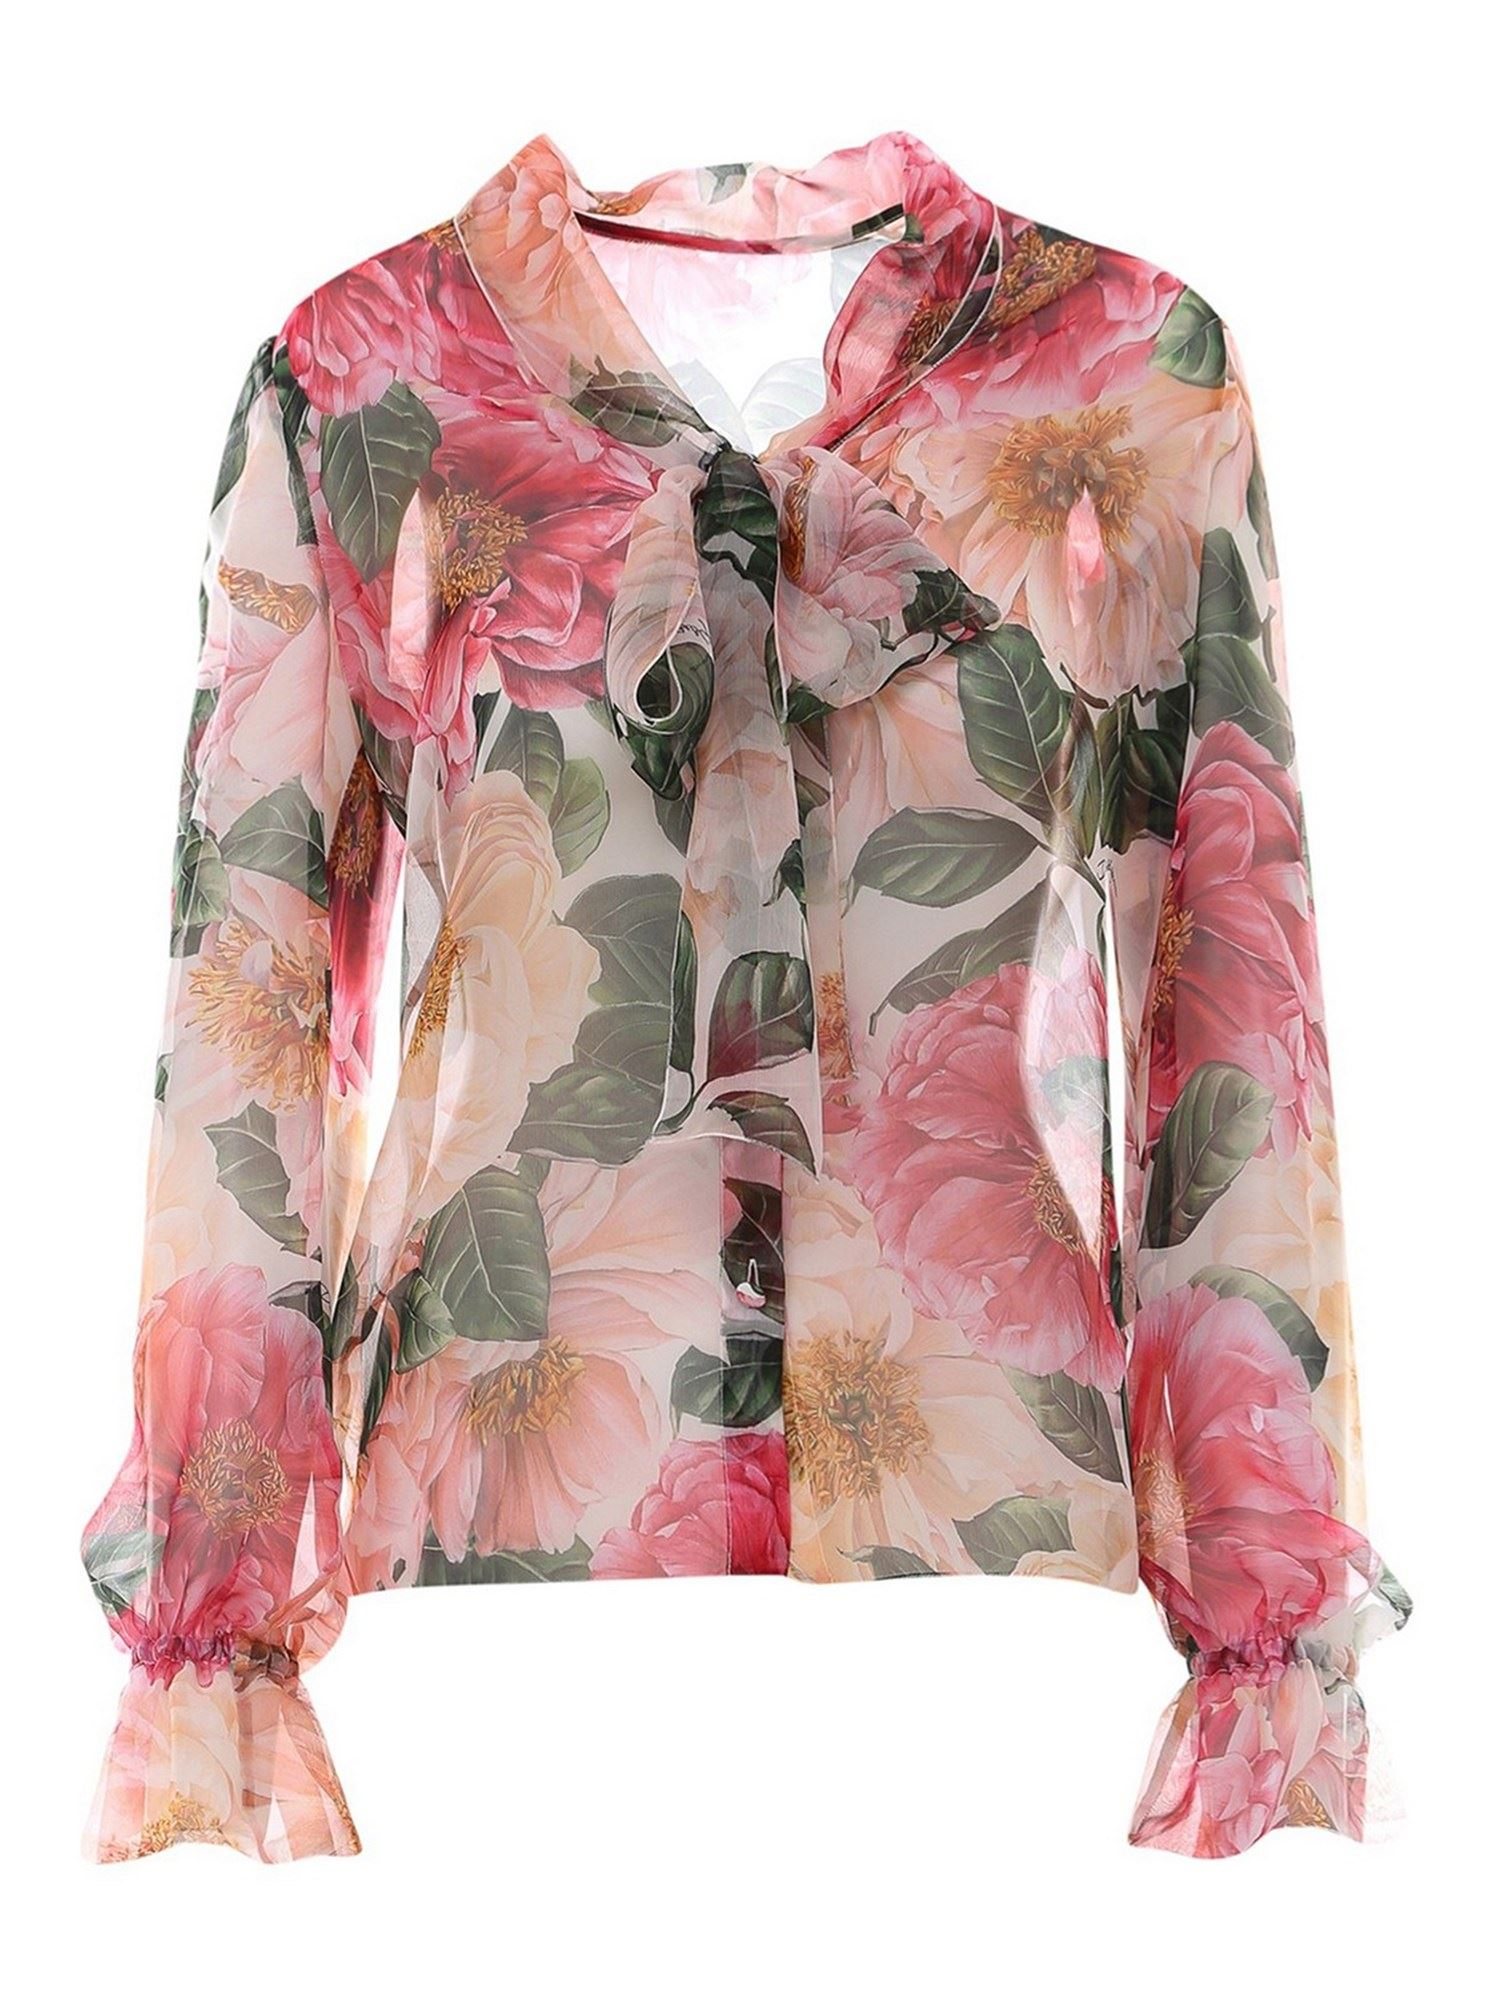 Dolce & Gabbana CAMELLIAS PRINTED SHIRT IN PINK